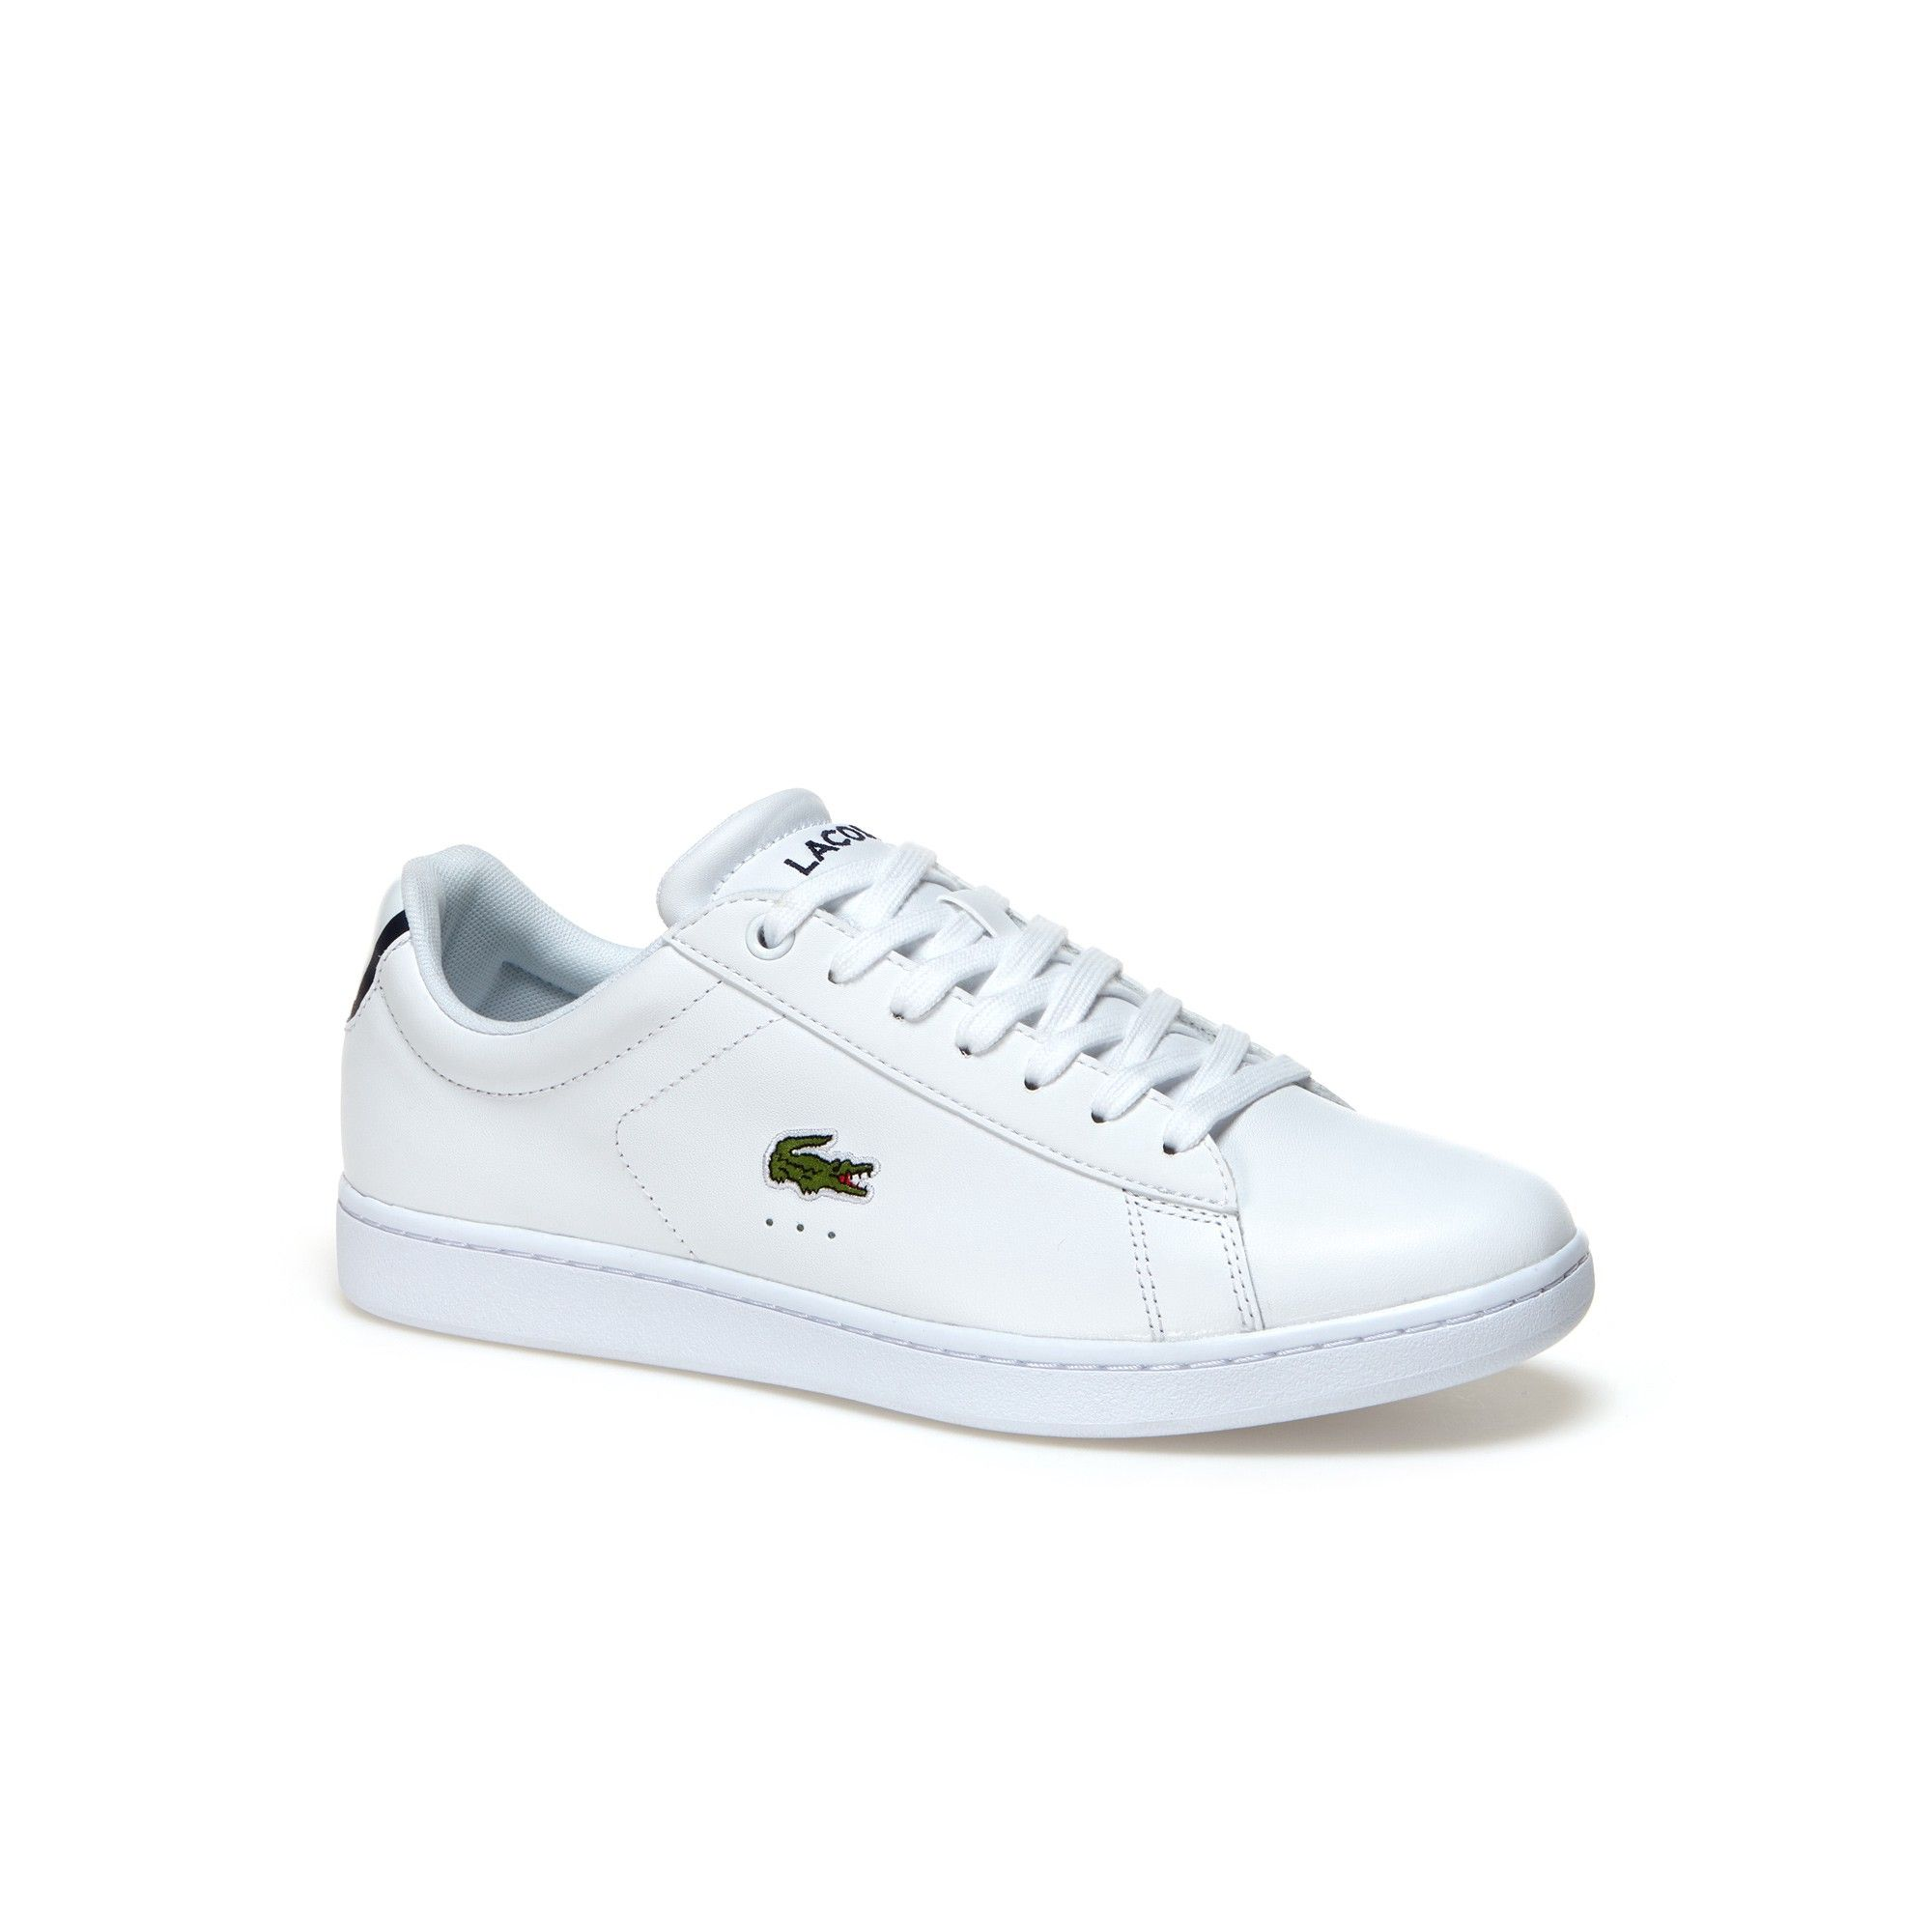 a7792cdc839320 Lacoste Men s Carnaby Evo Bl Leather Trainers - White 8.5